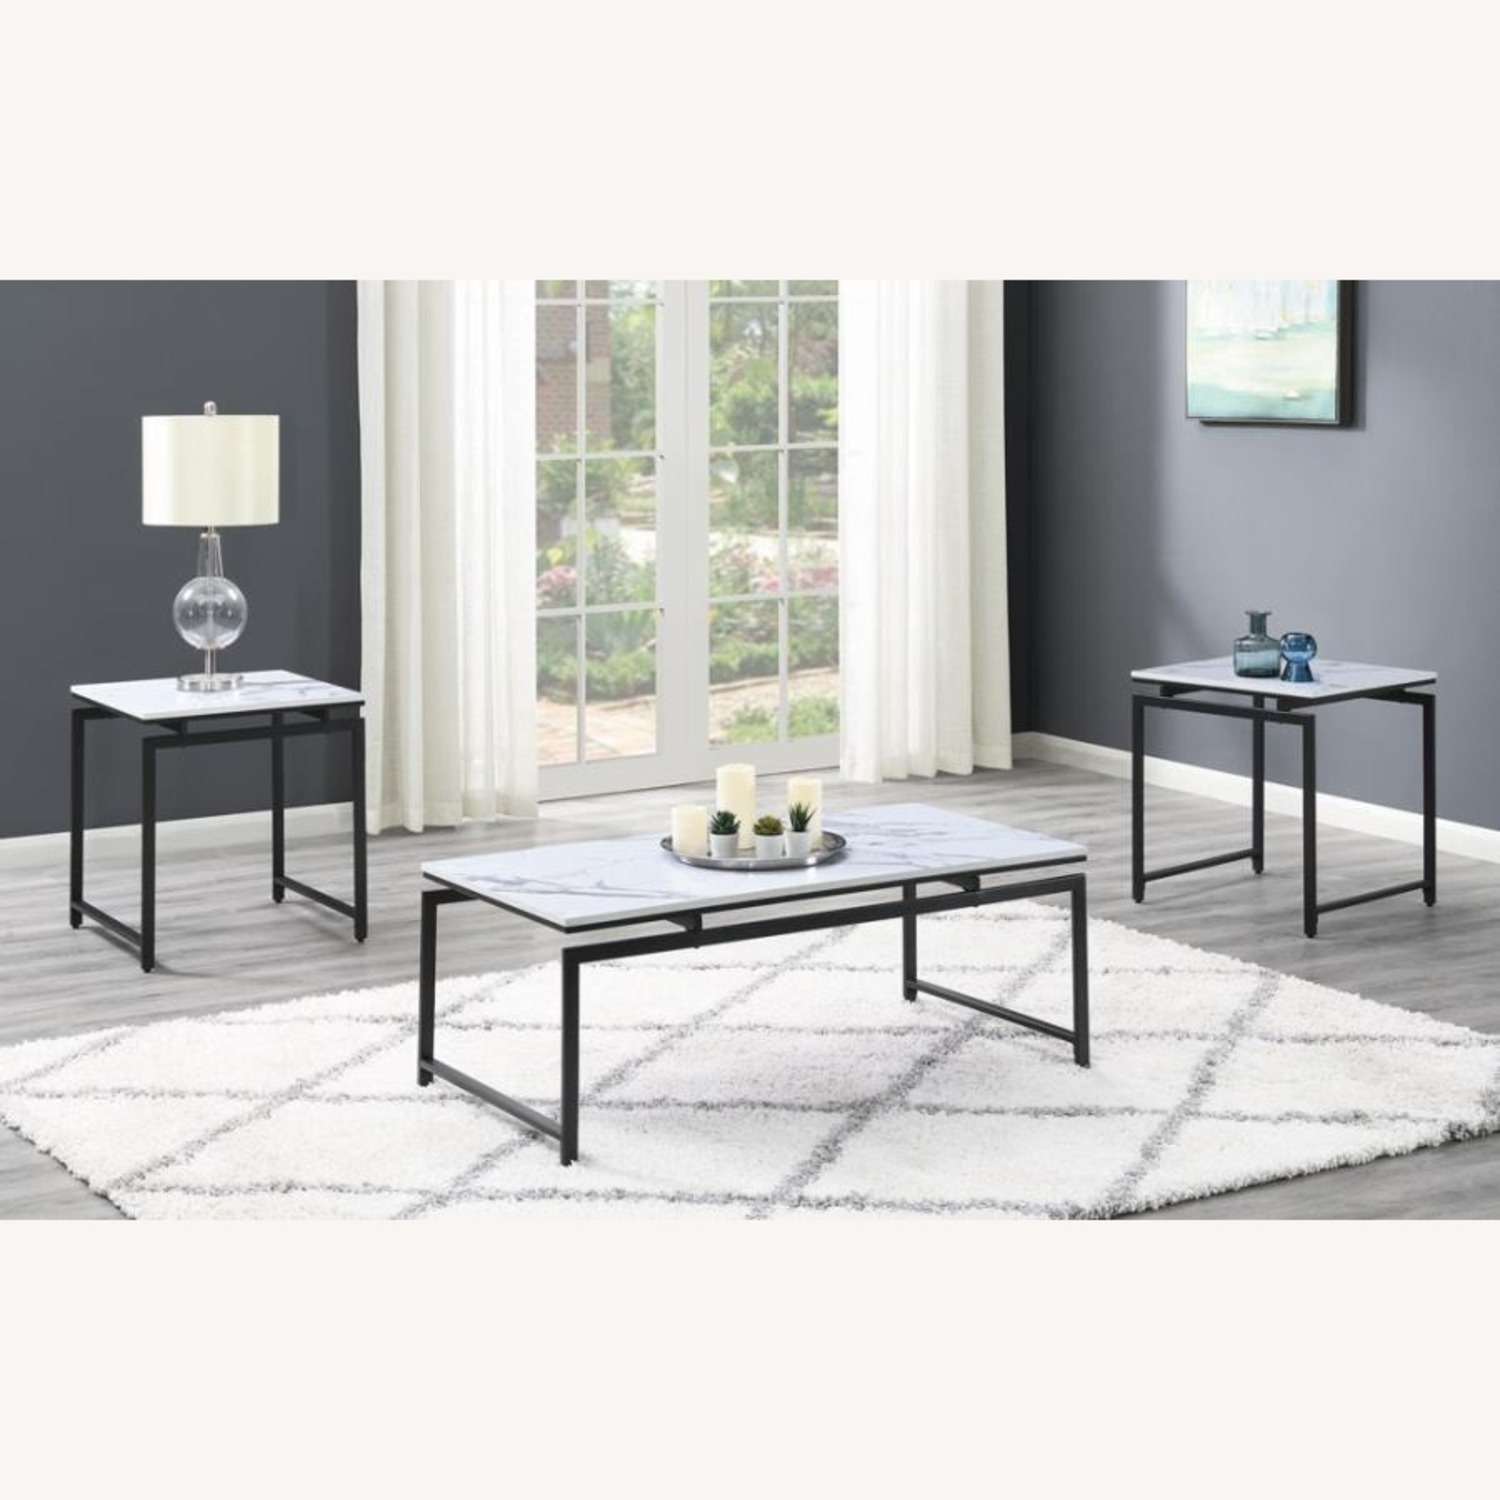 3-Piece Occasional Set In White Faux Marble Finish - image-6